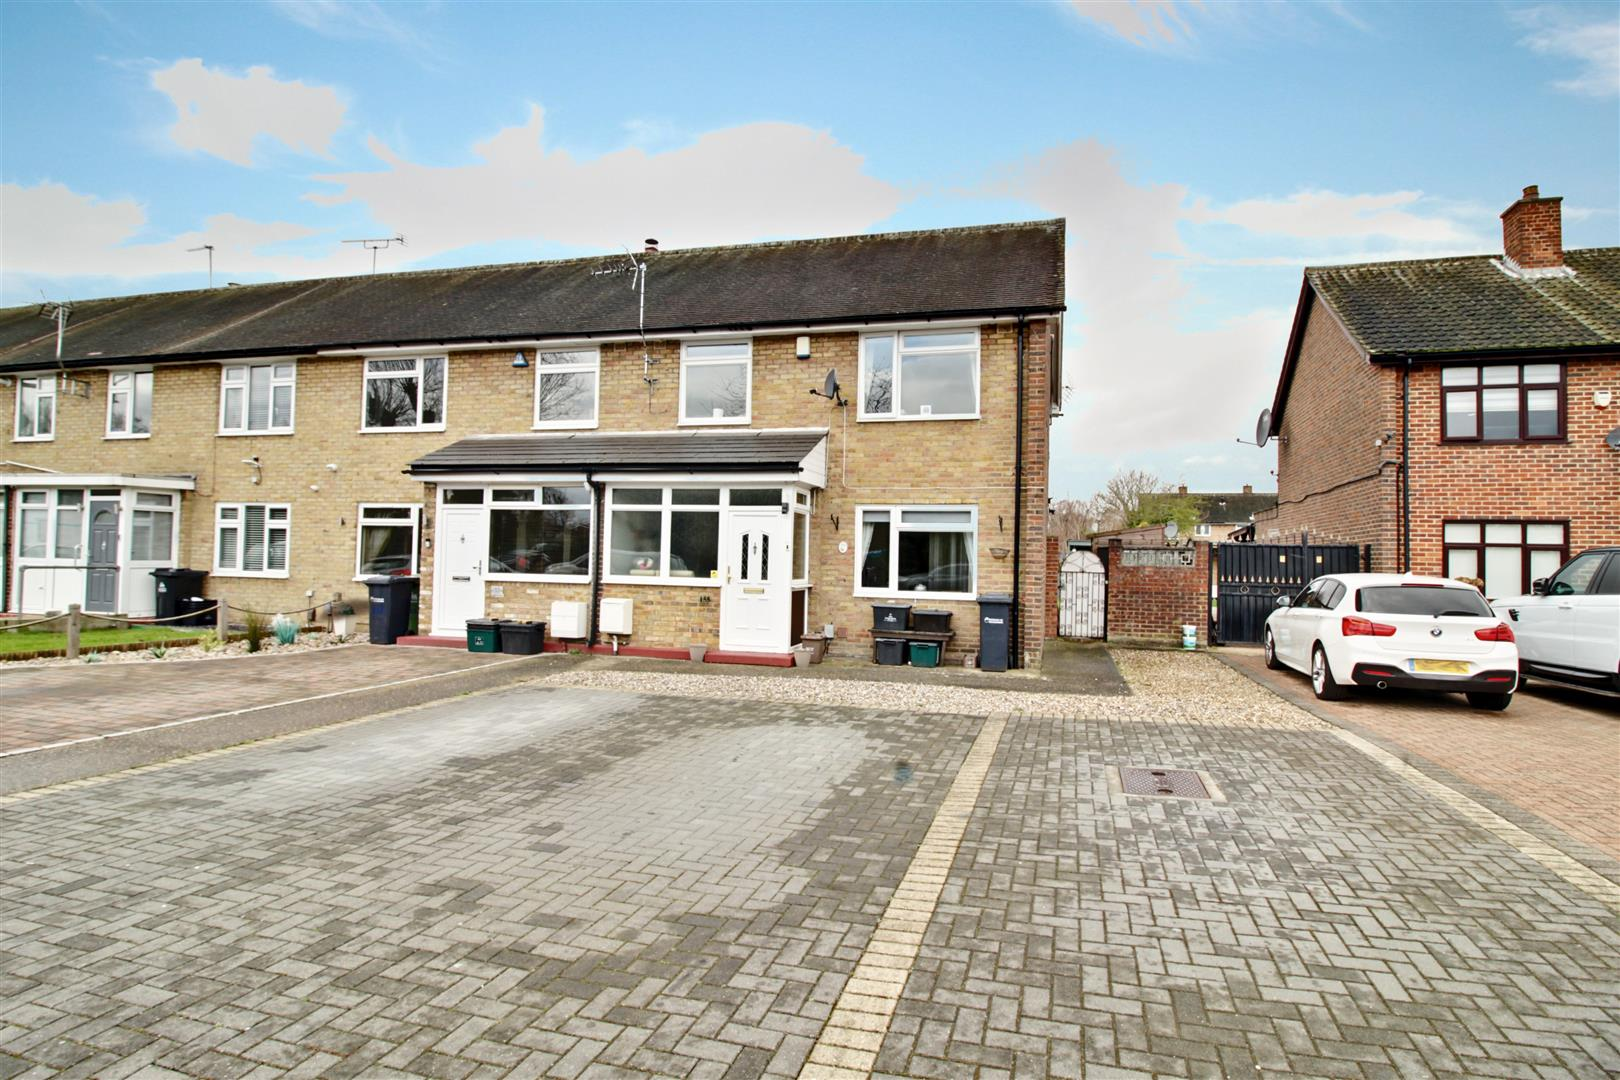 Russells Ride, Cheshunt, 3 Bedroom Family Home, Within Walking Distance To Cheshunt Train Station